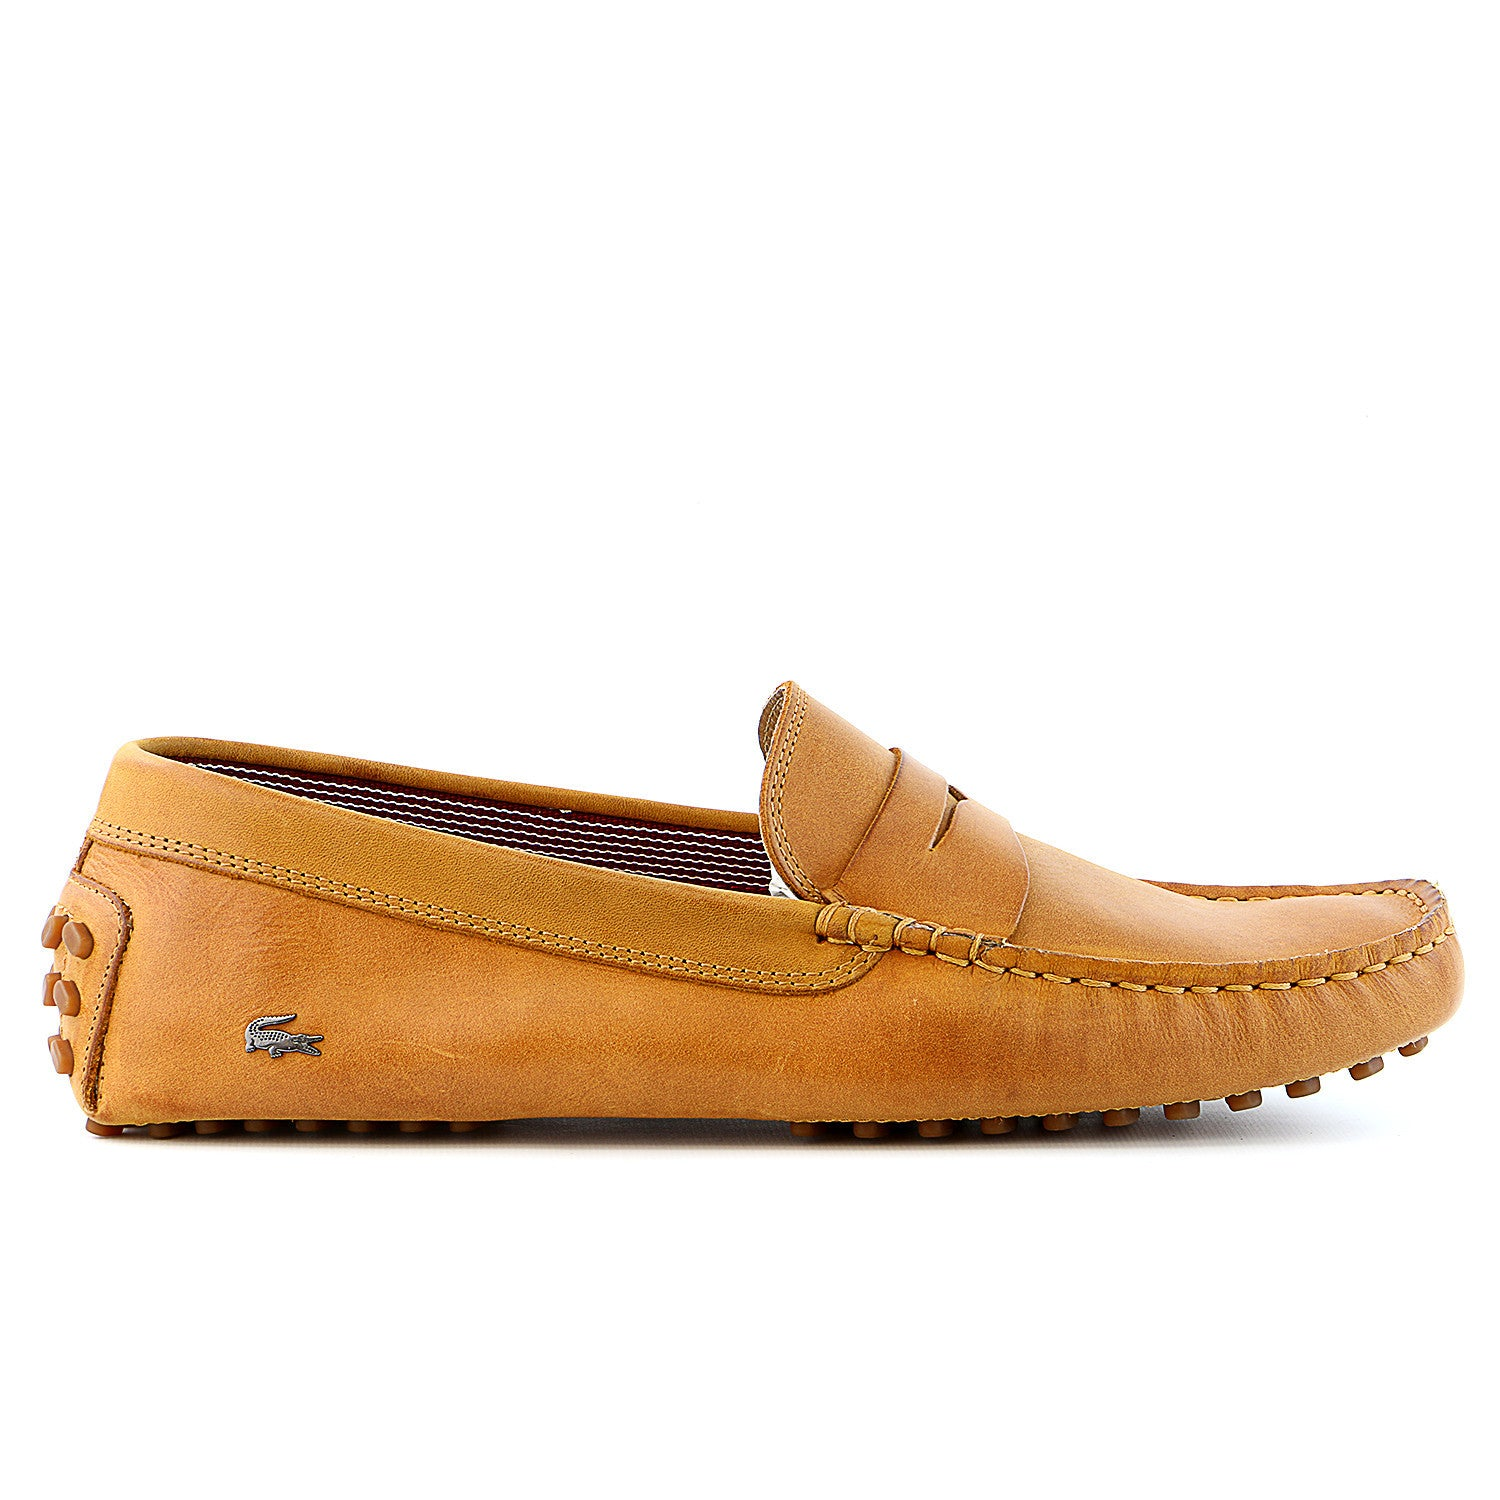 ba5ad8bc6ac Lacoste Concours 16 SRM Leather Moccasin Loafer Shoe - Tan - Mens -  Shoplifestyle